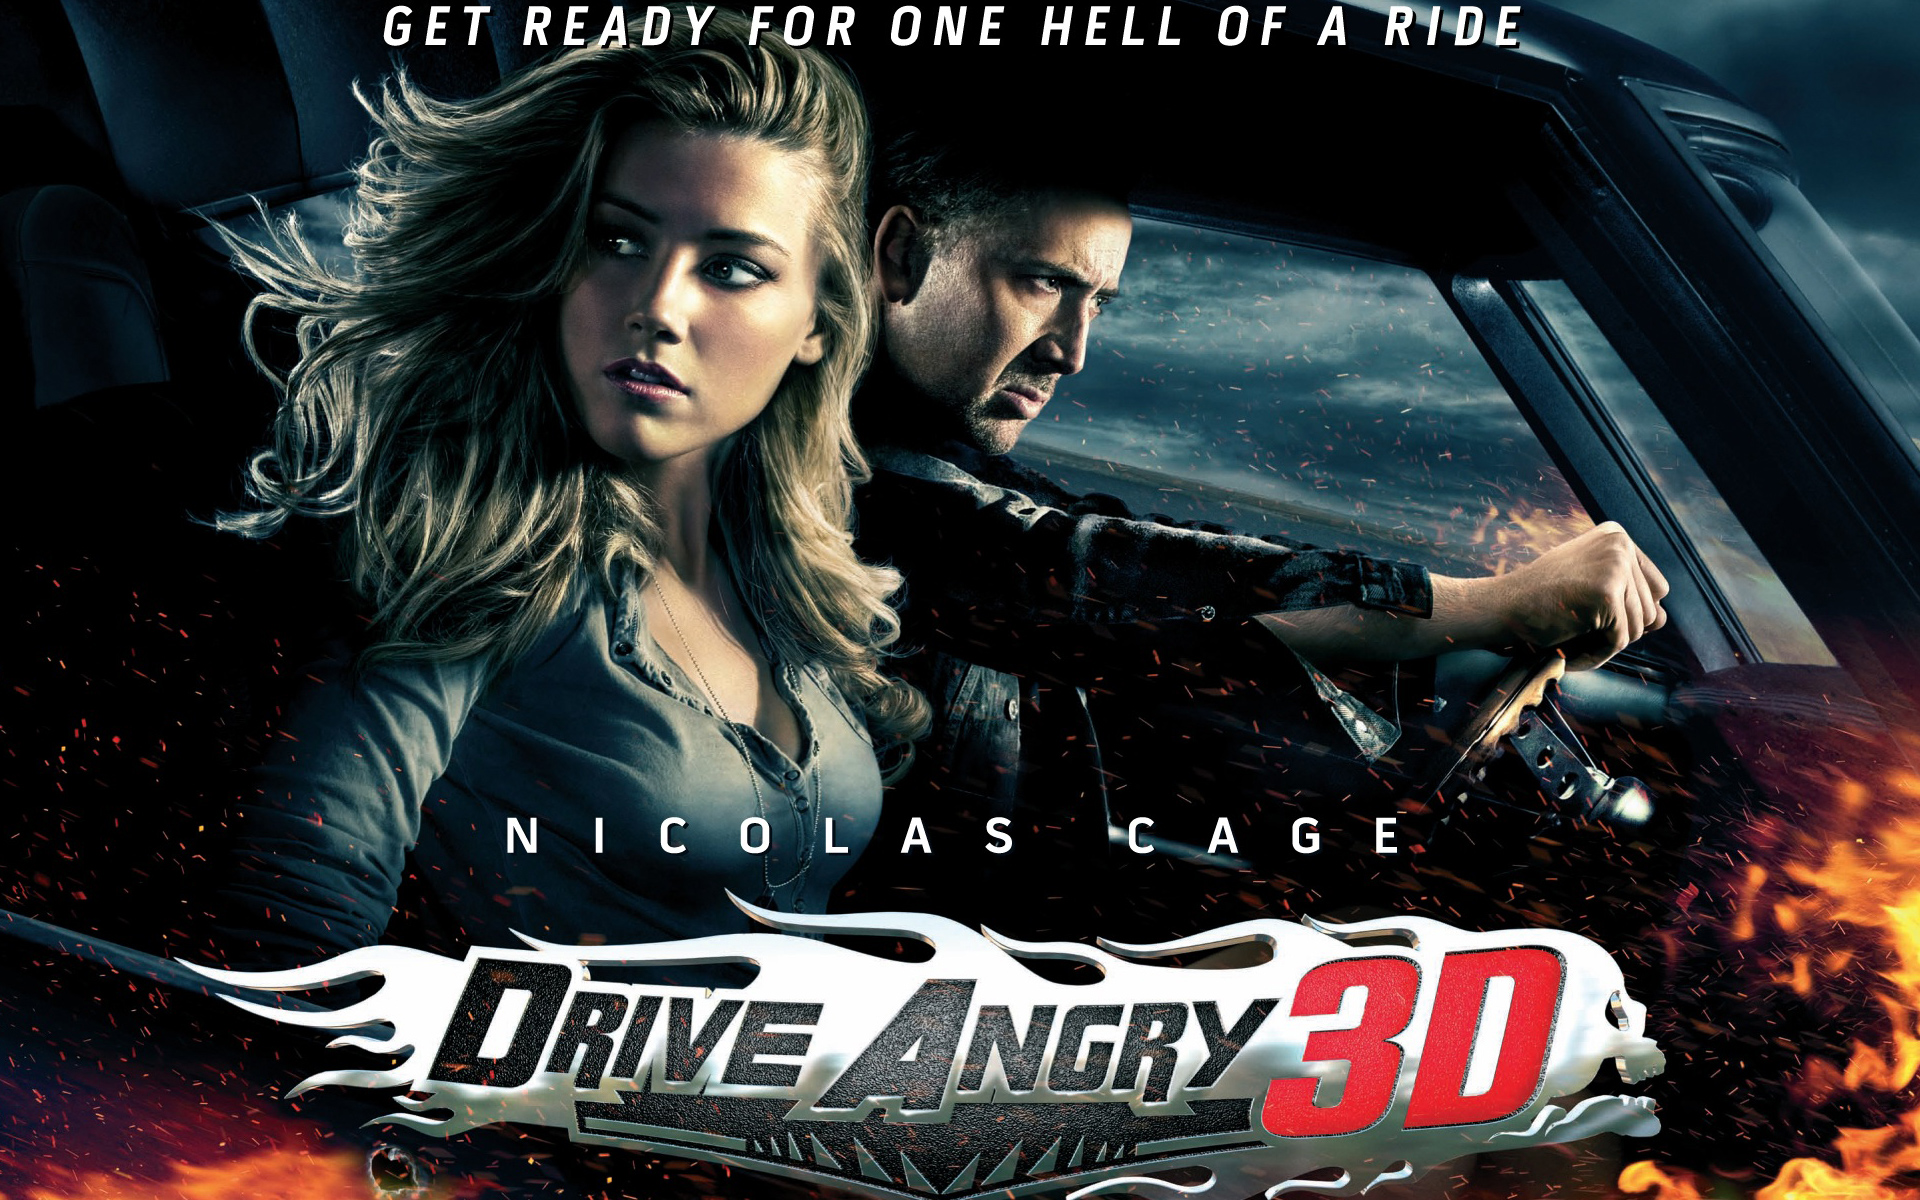 49+] Drive Movie Wallpaper on WallpaperSafari